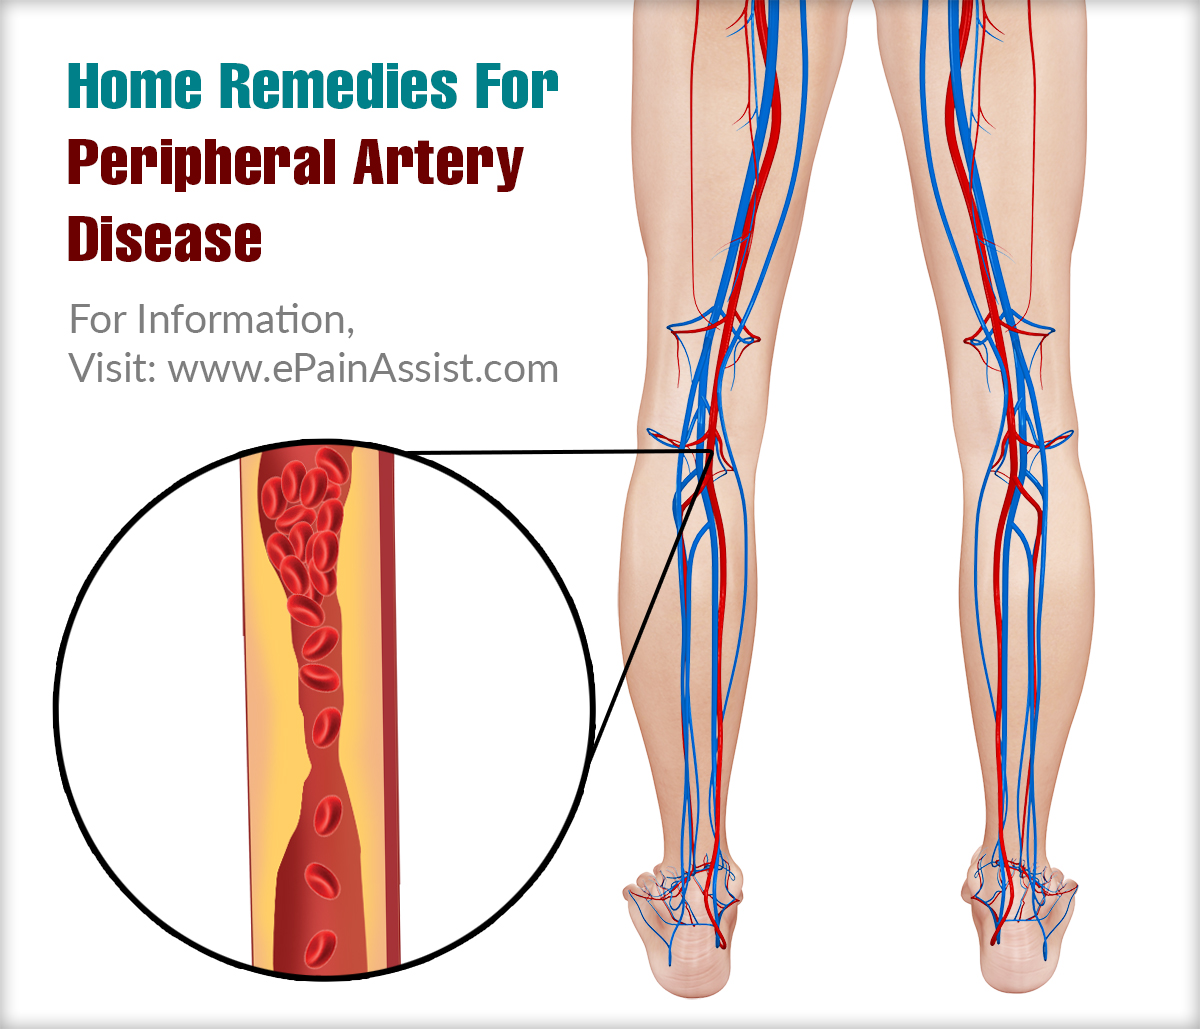 Home Remedies For Peripheral Artery Disease